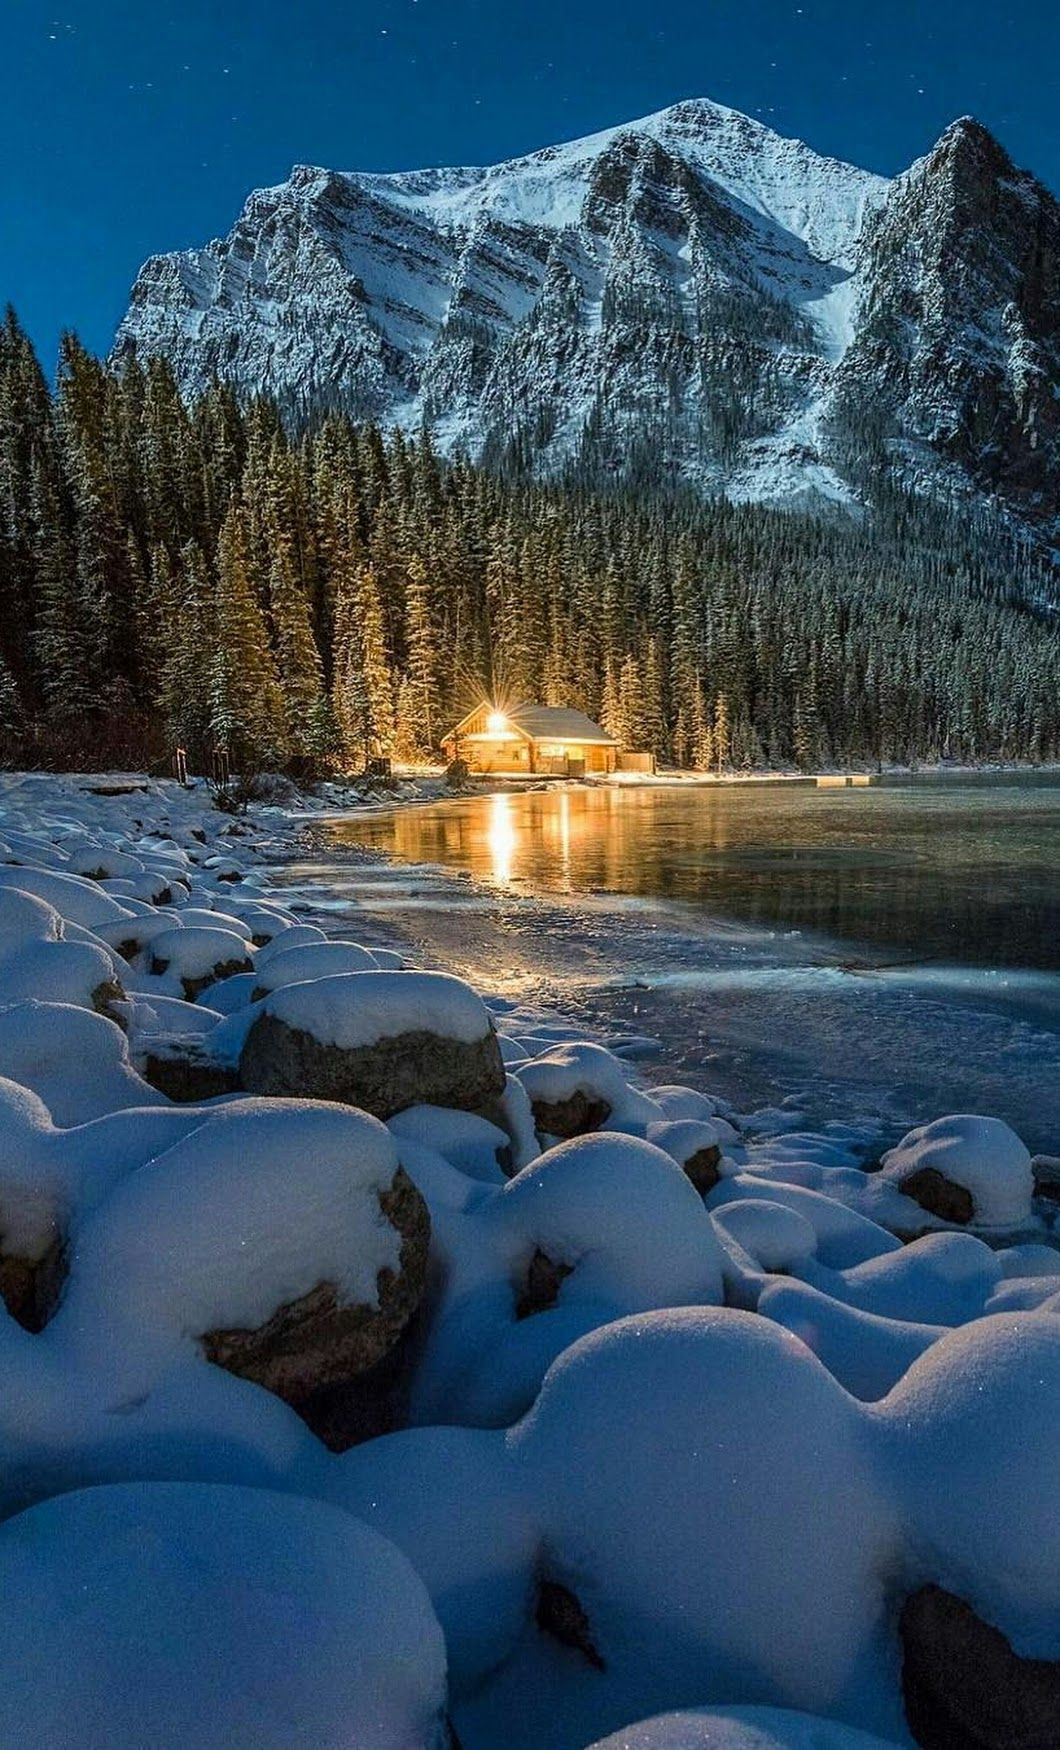 Forest Mountains Snow Cabin House Wilderness Nature Photography Winter Scenery Winter Landscape Nature Photography